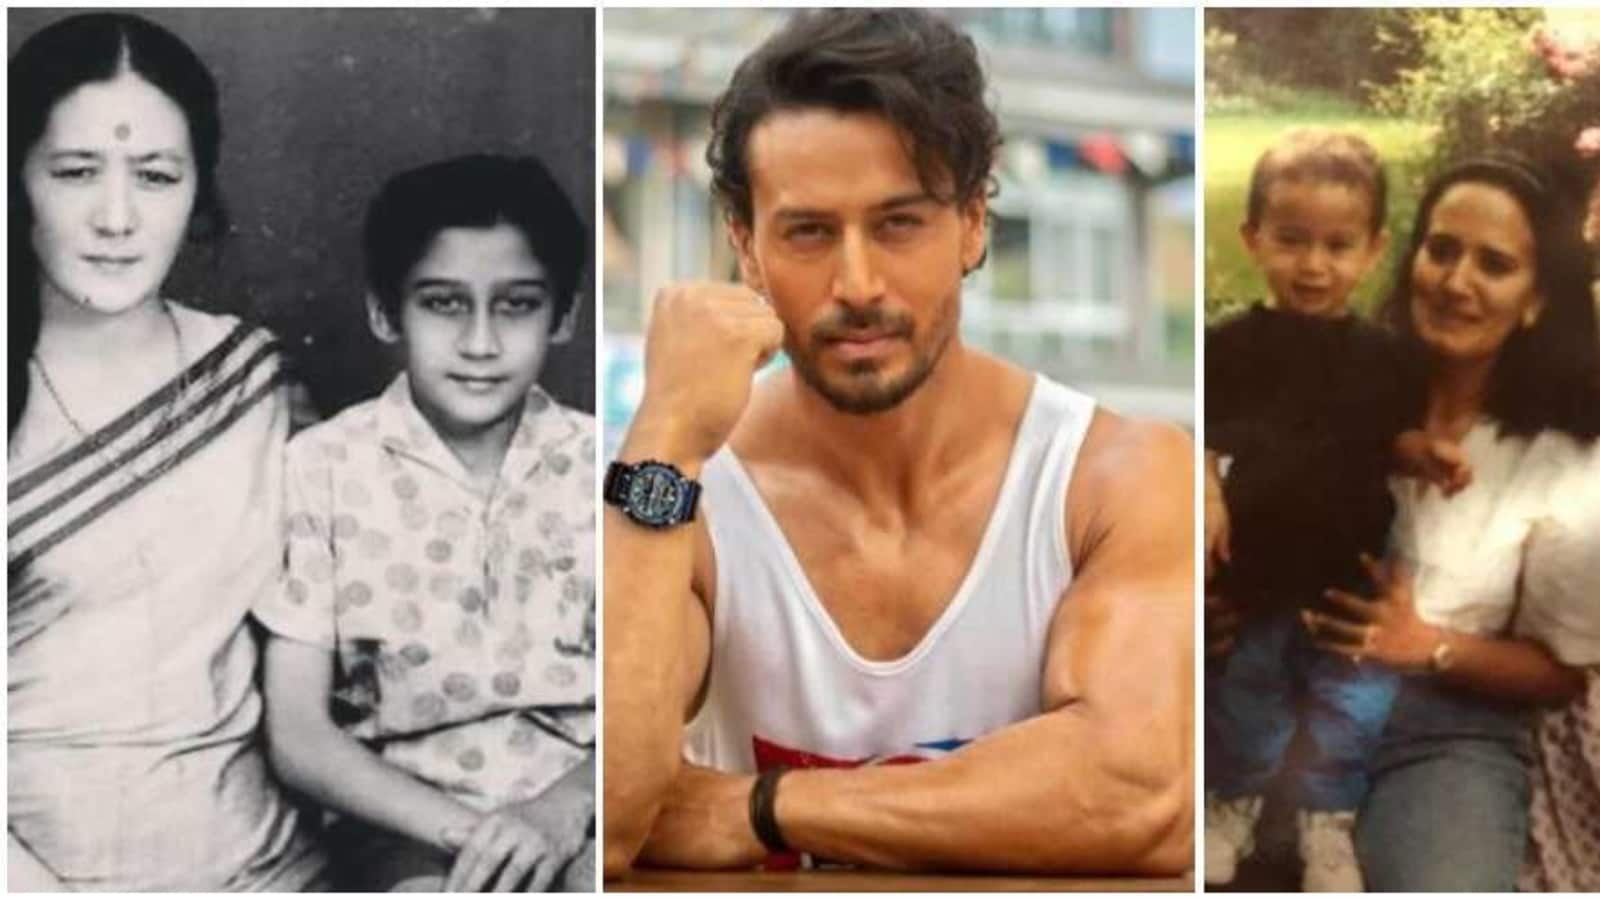 Did you know Tiger Shroff's handsome looks come from his Gujarati, Turk, Belgian roots? - Hindustan Times